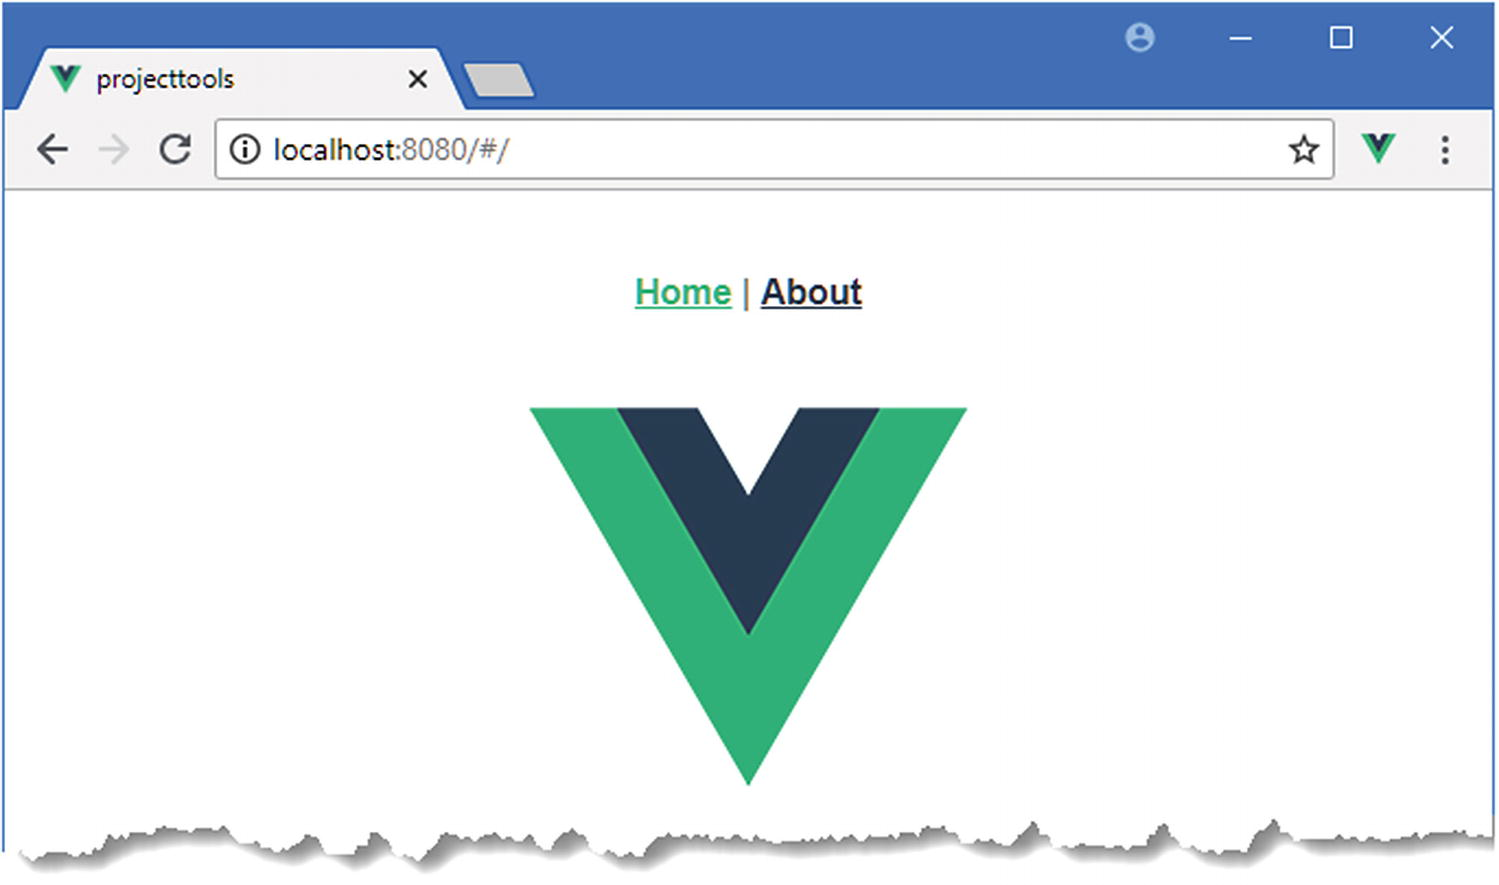 Understanding Vue js Projects and Tools | SpringerLink